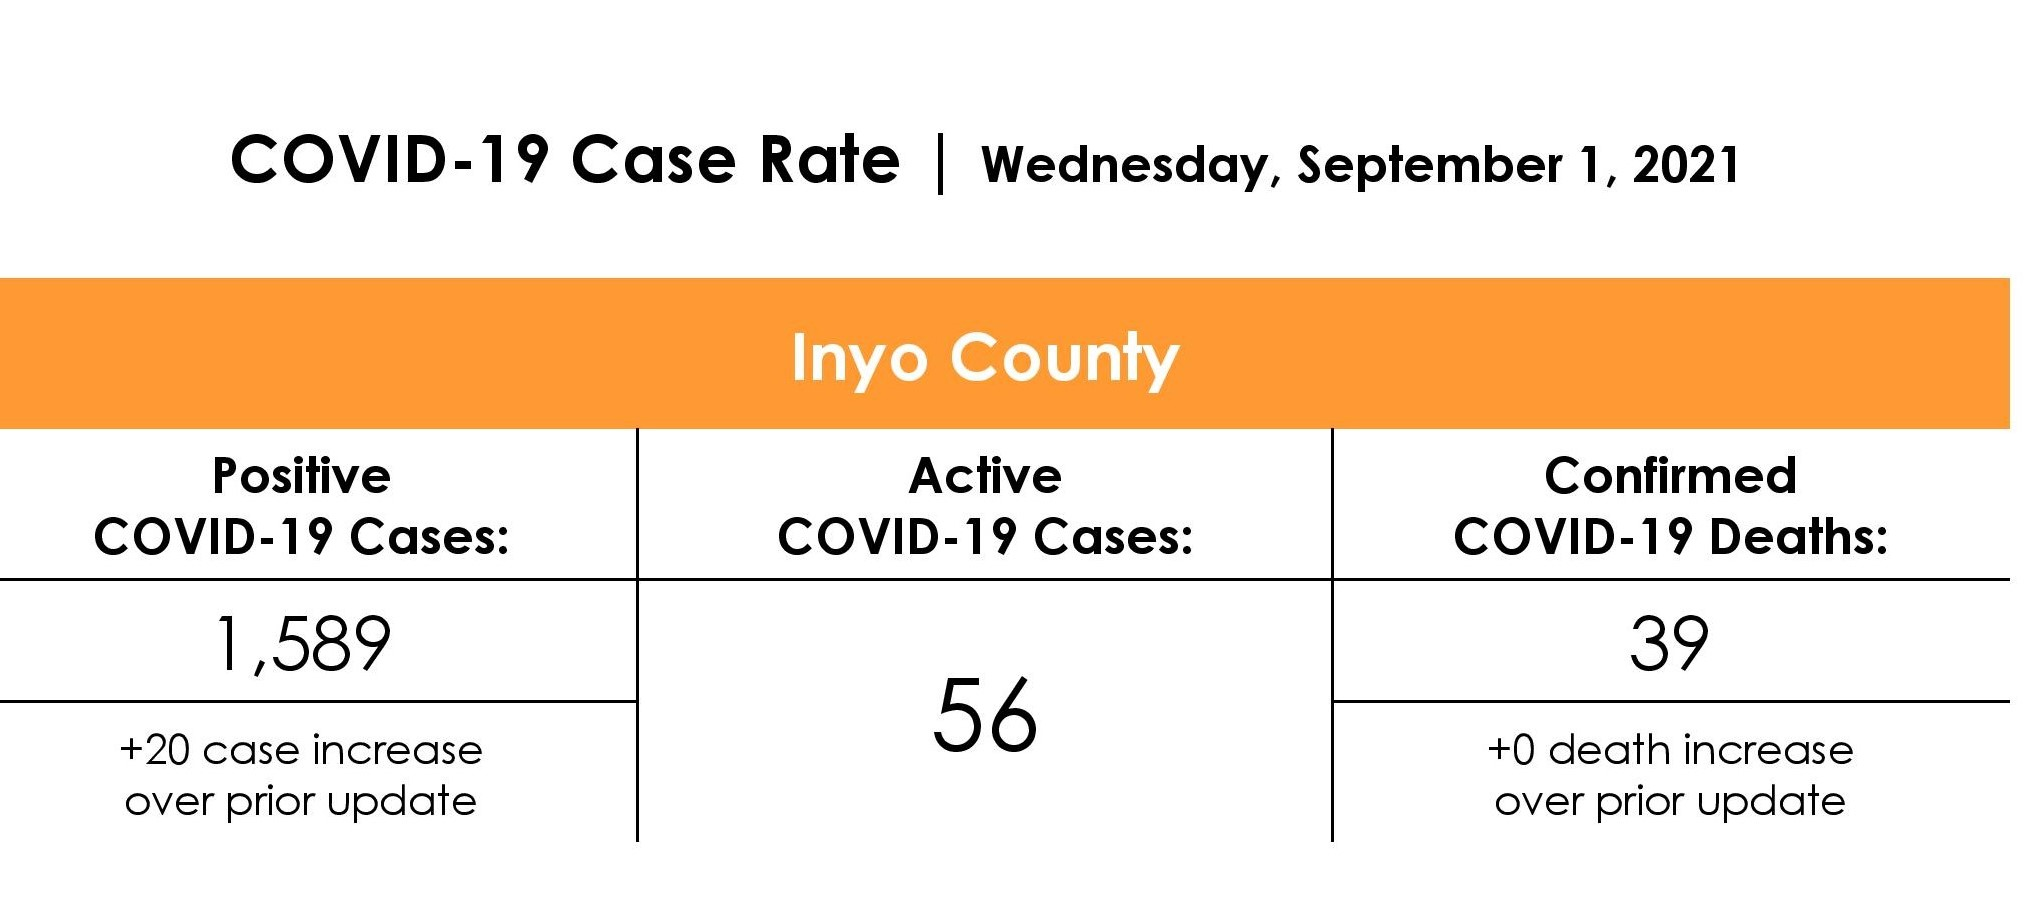 Inyo County COVID-19 Case Rate as of September 1st, 2021